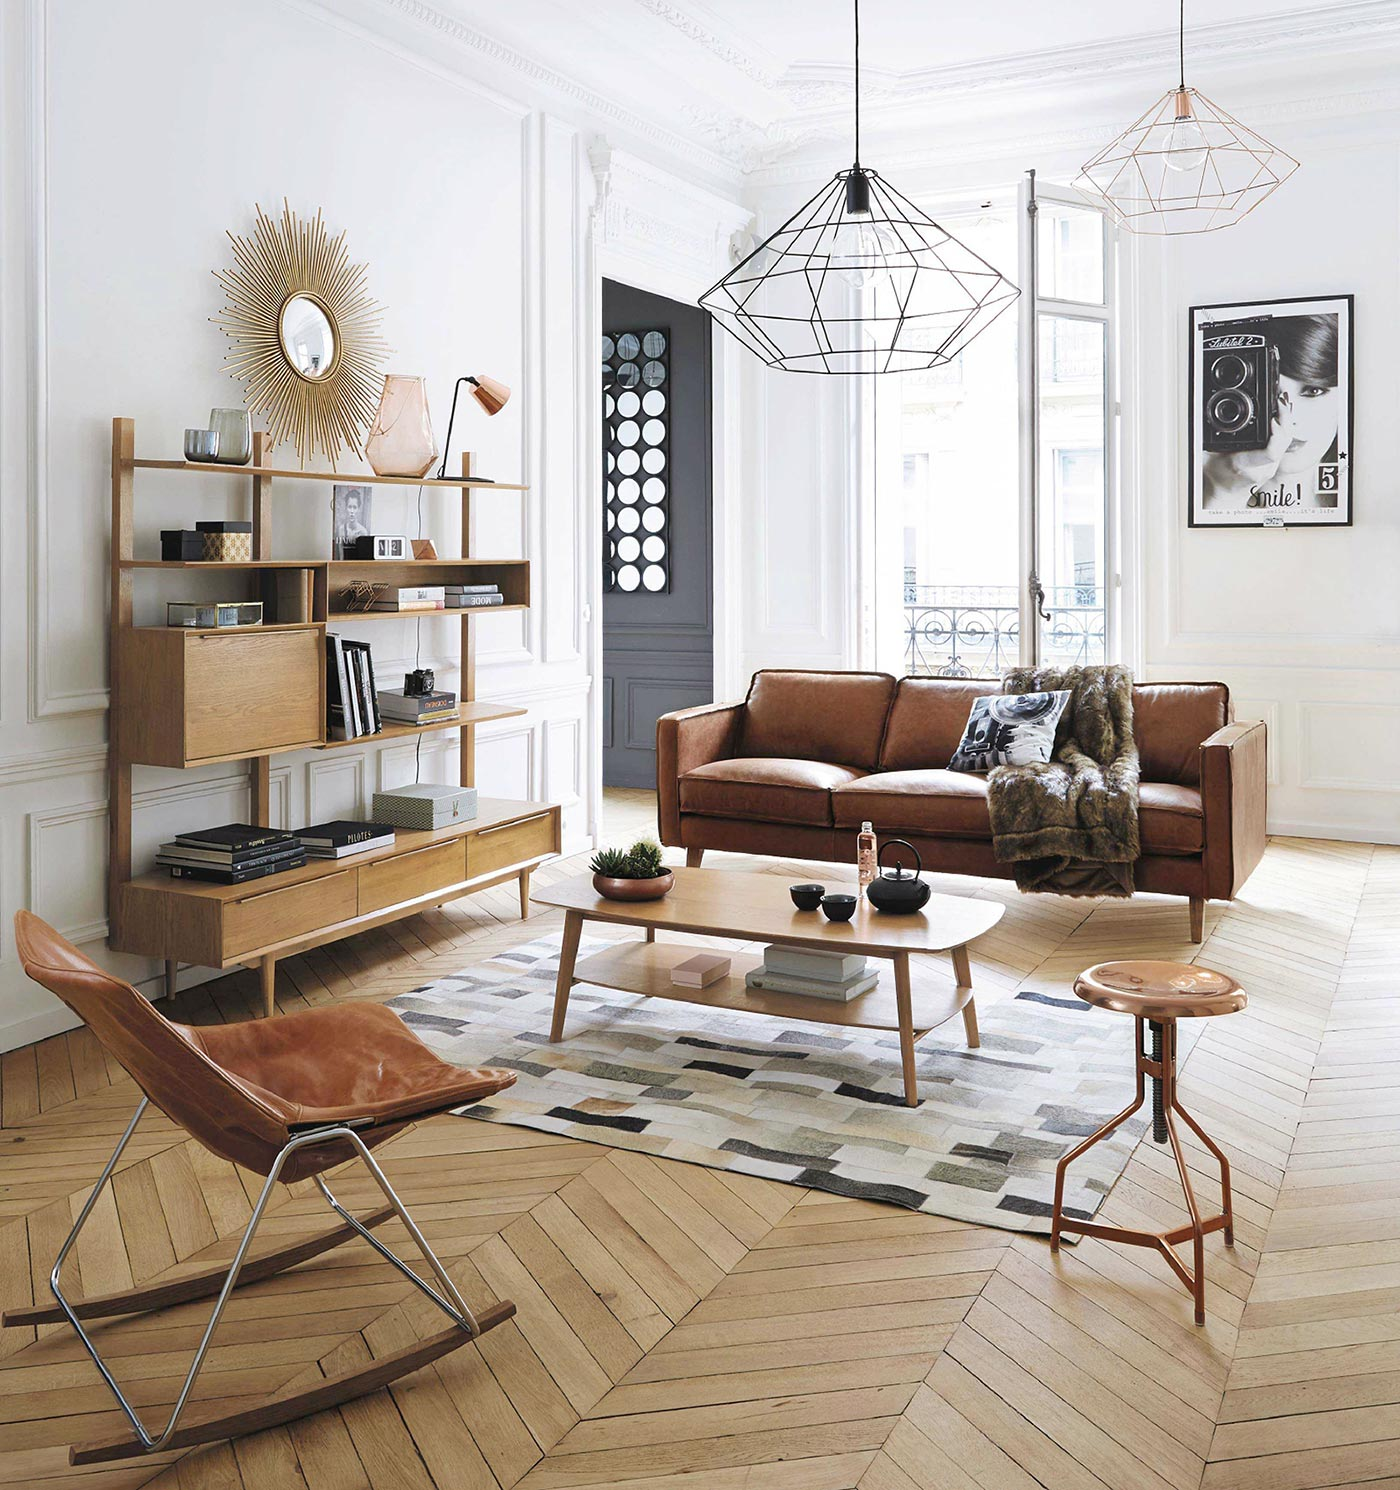 Most Popular Interior Design Styles What S In For 2021 Adorable Home